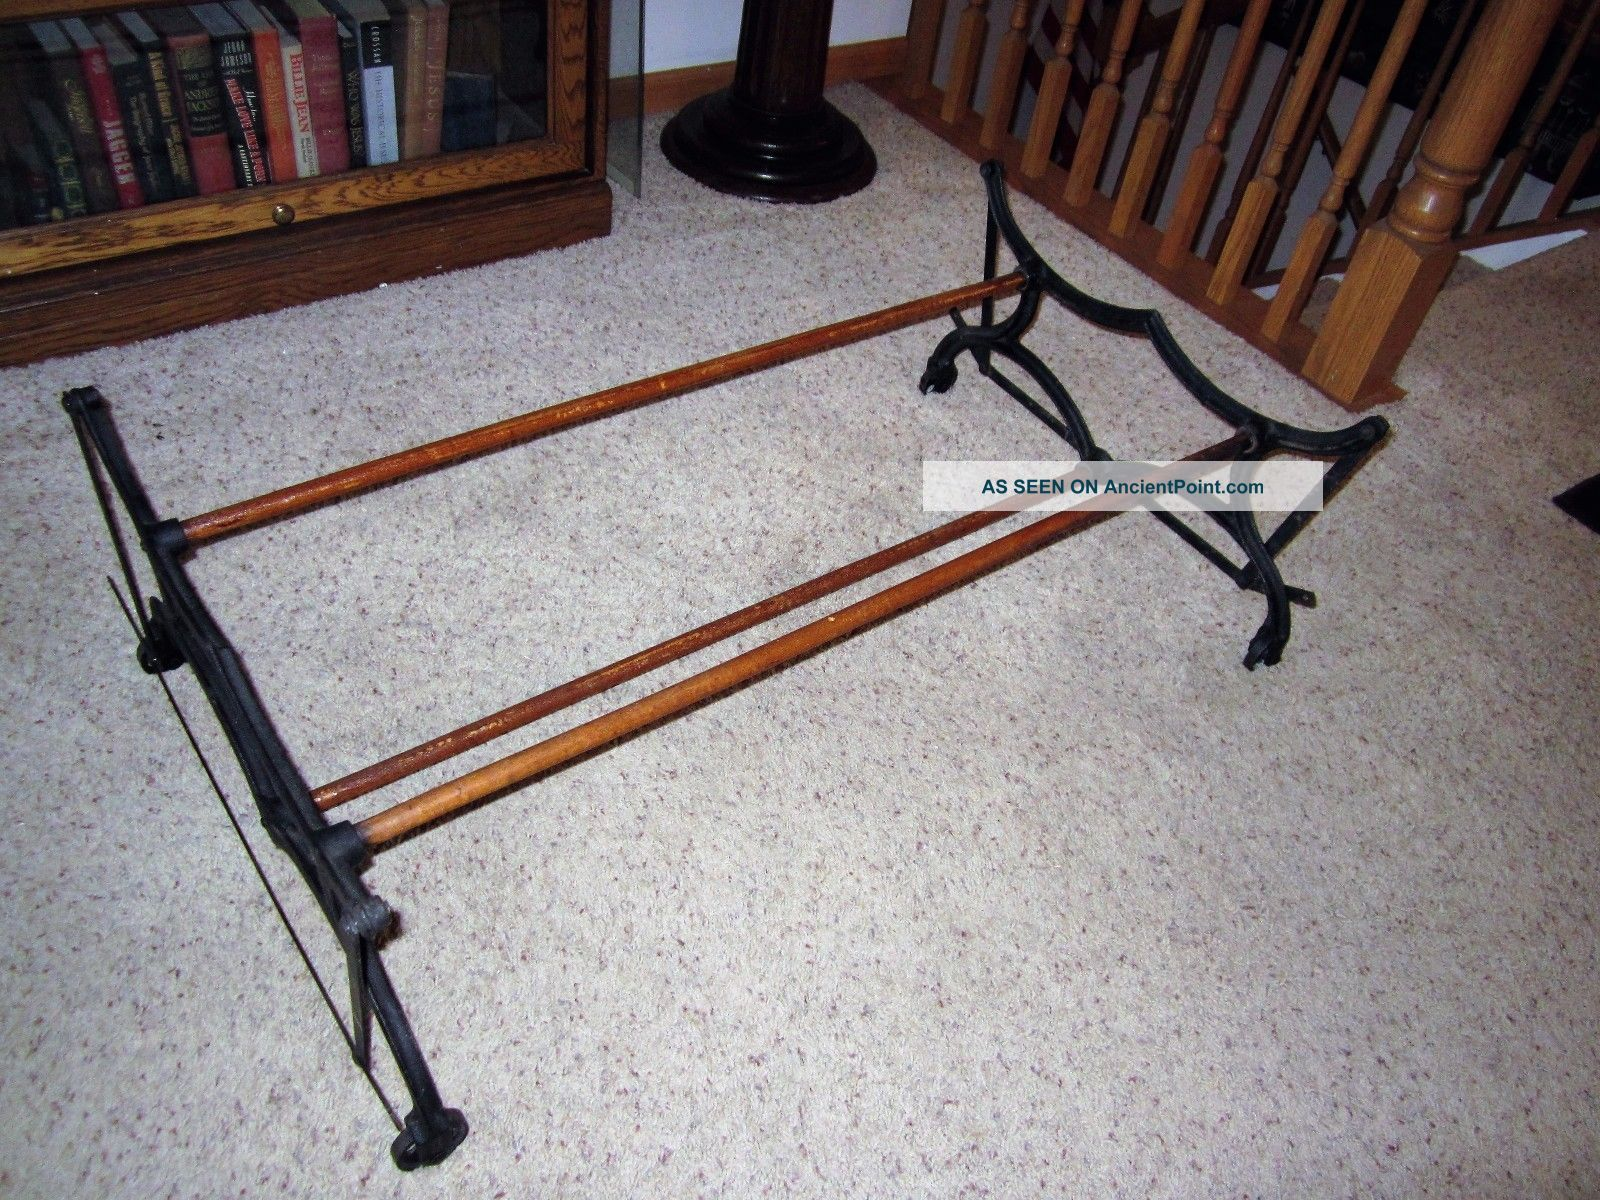 Victorian Cast Iron Wood Mystery Primitive Coffee Table Base Laundry Rack Holder 1800-1899 photo